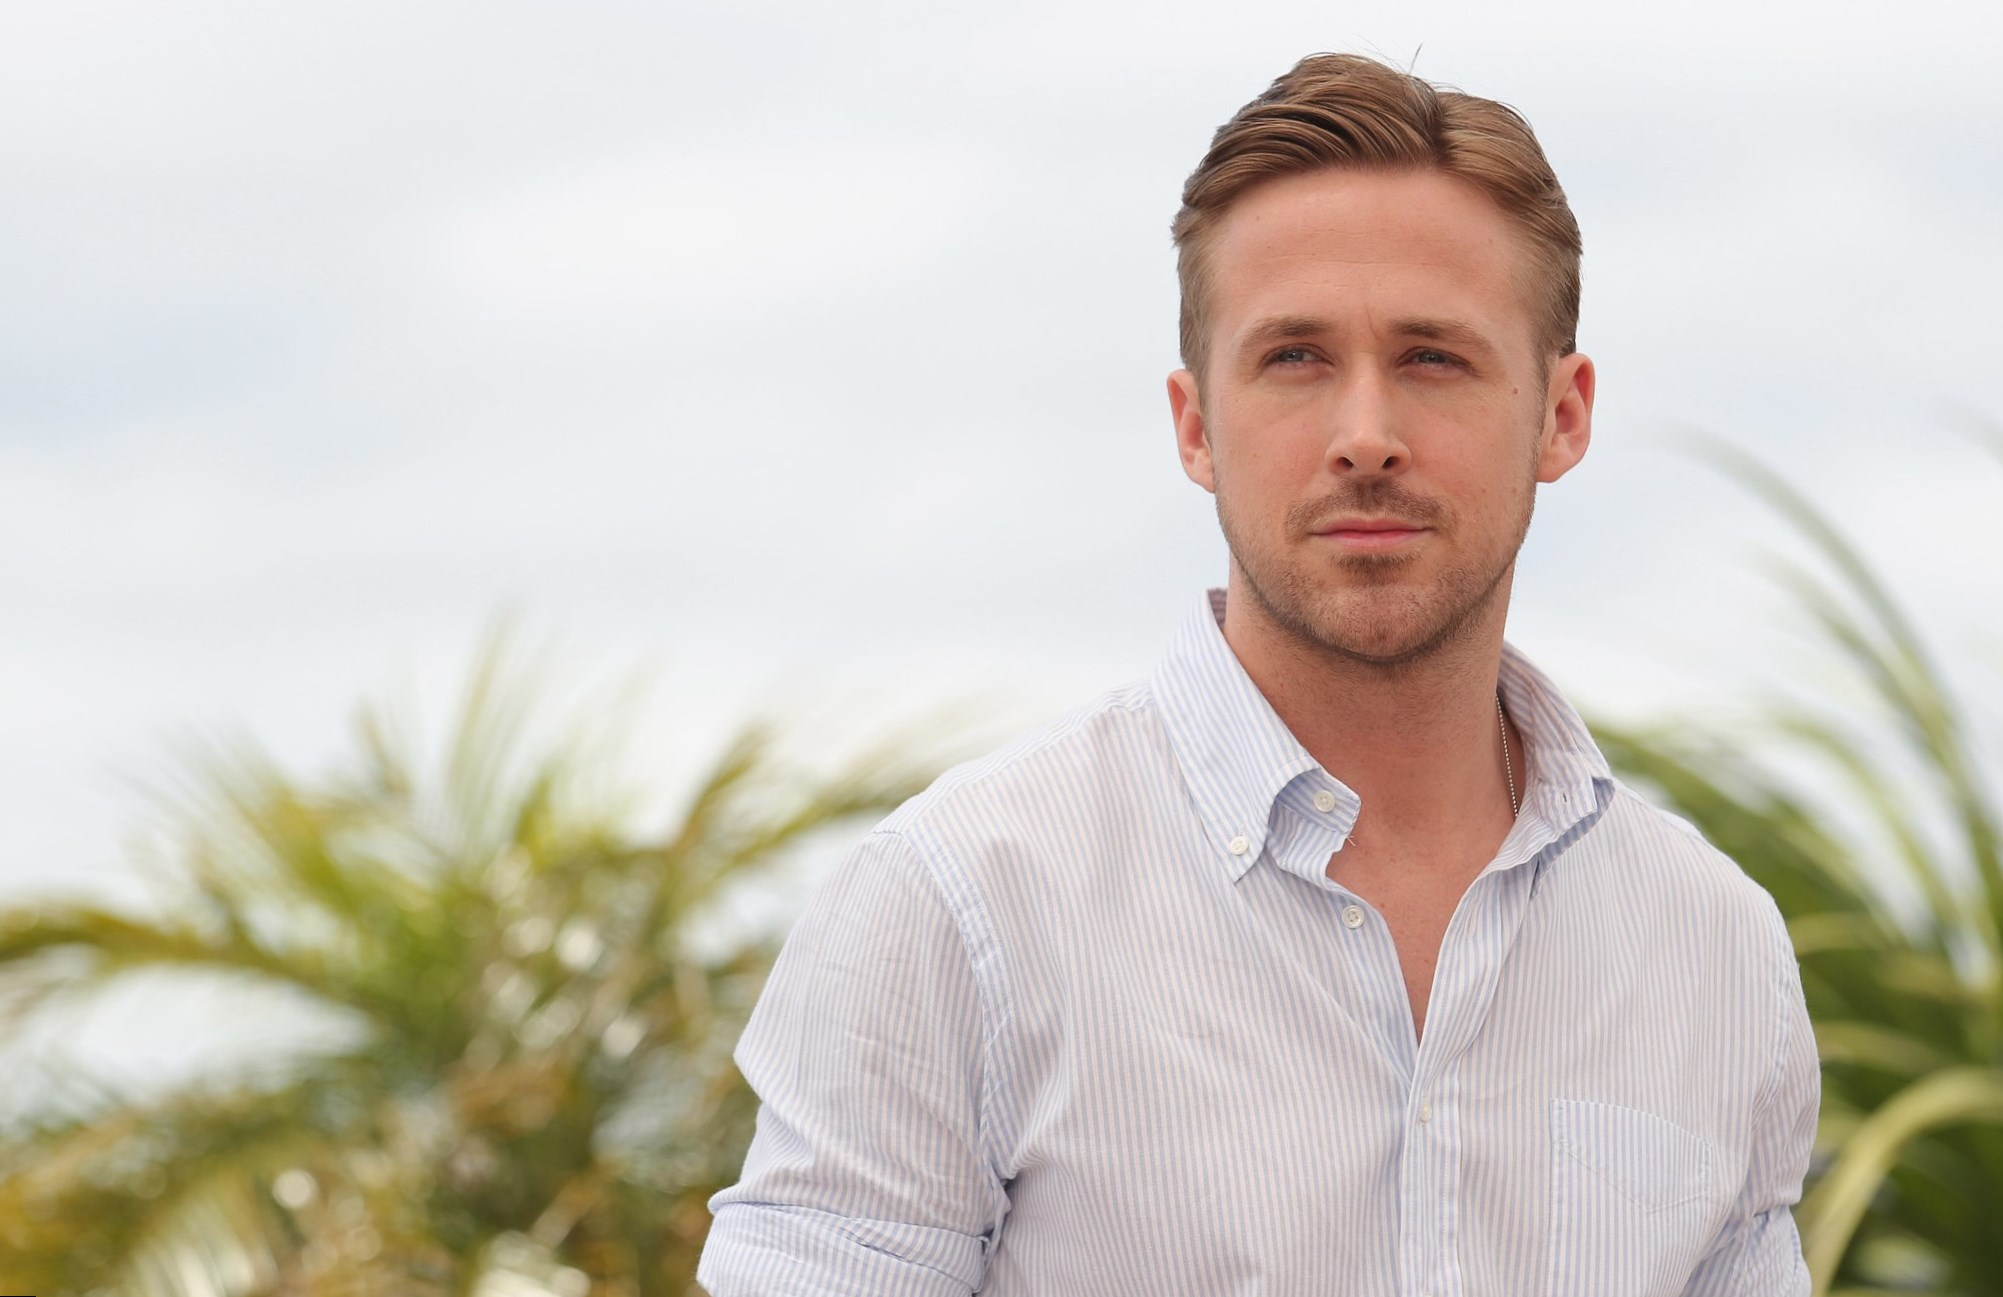 Ryan Gosling weight, height and age. We know it all! Ryan Gosling